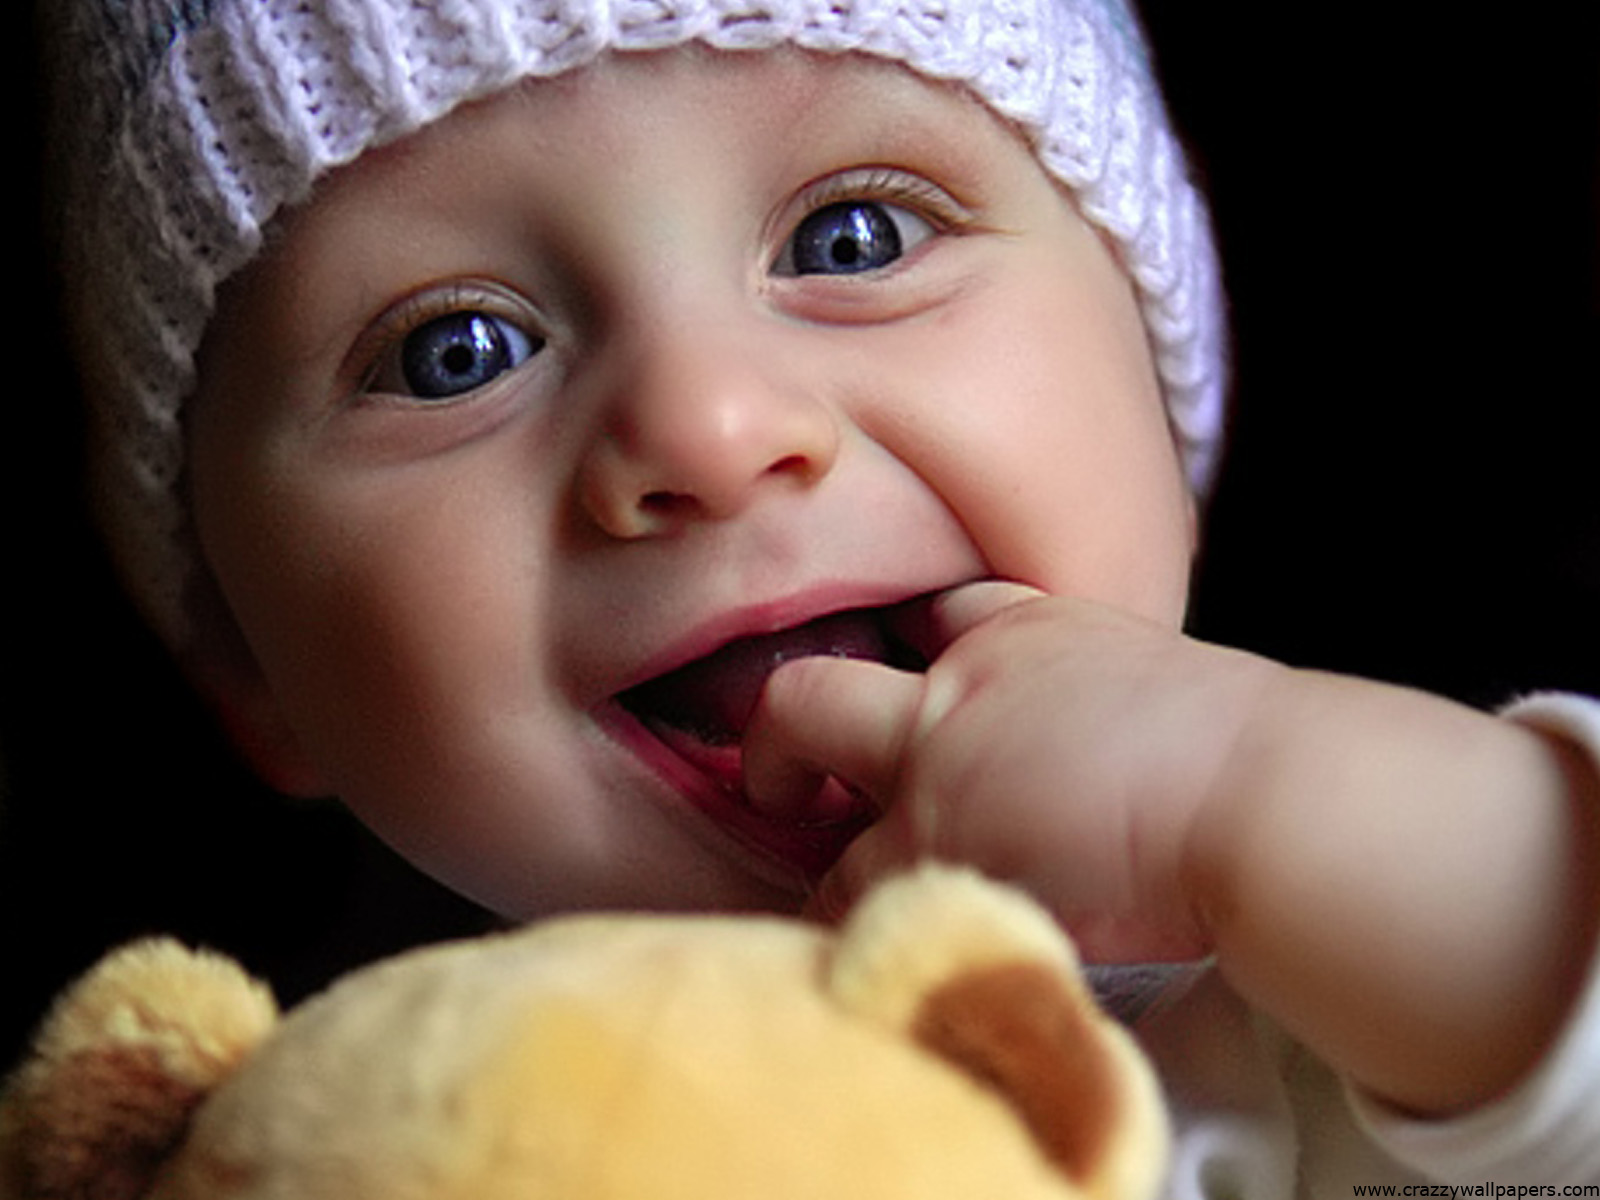 Cute baby playing doll Wallpapers HD Wallpapers 1600x1200